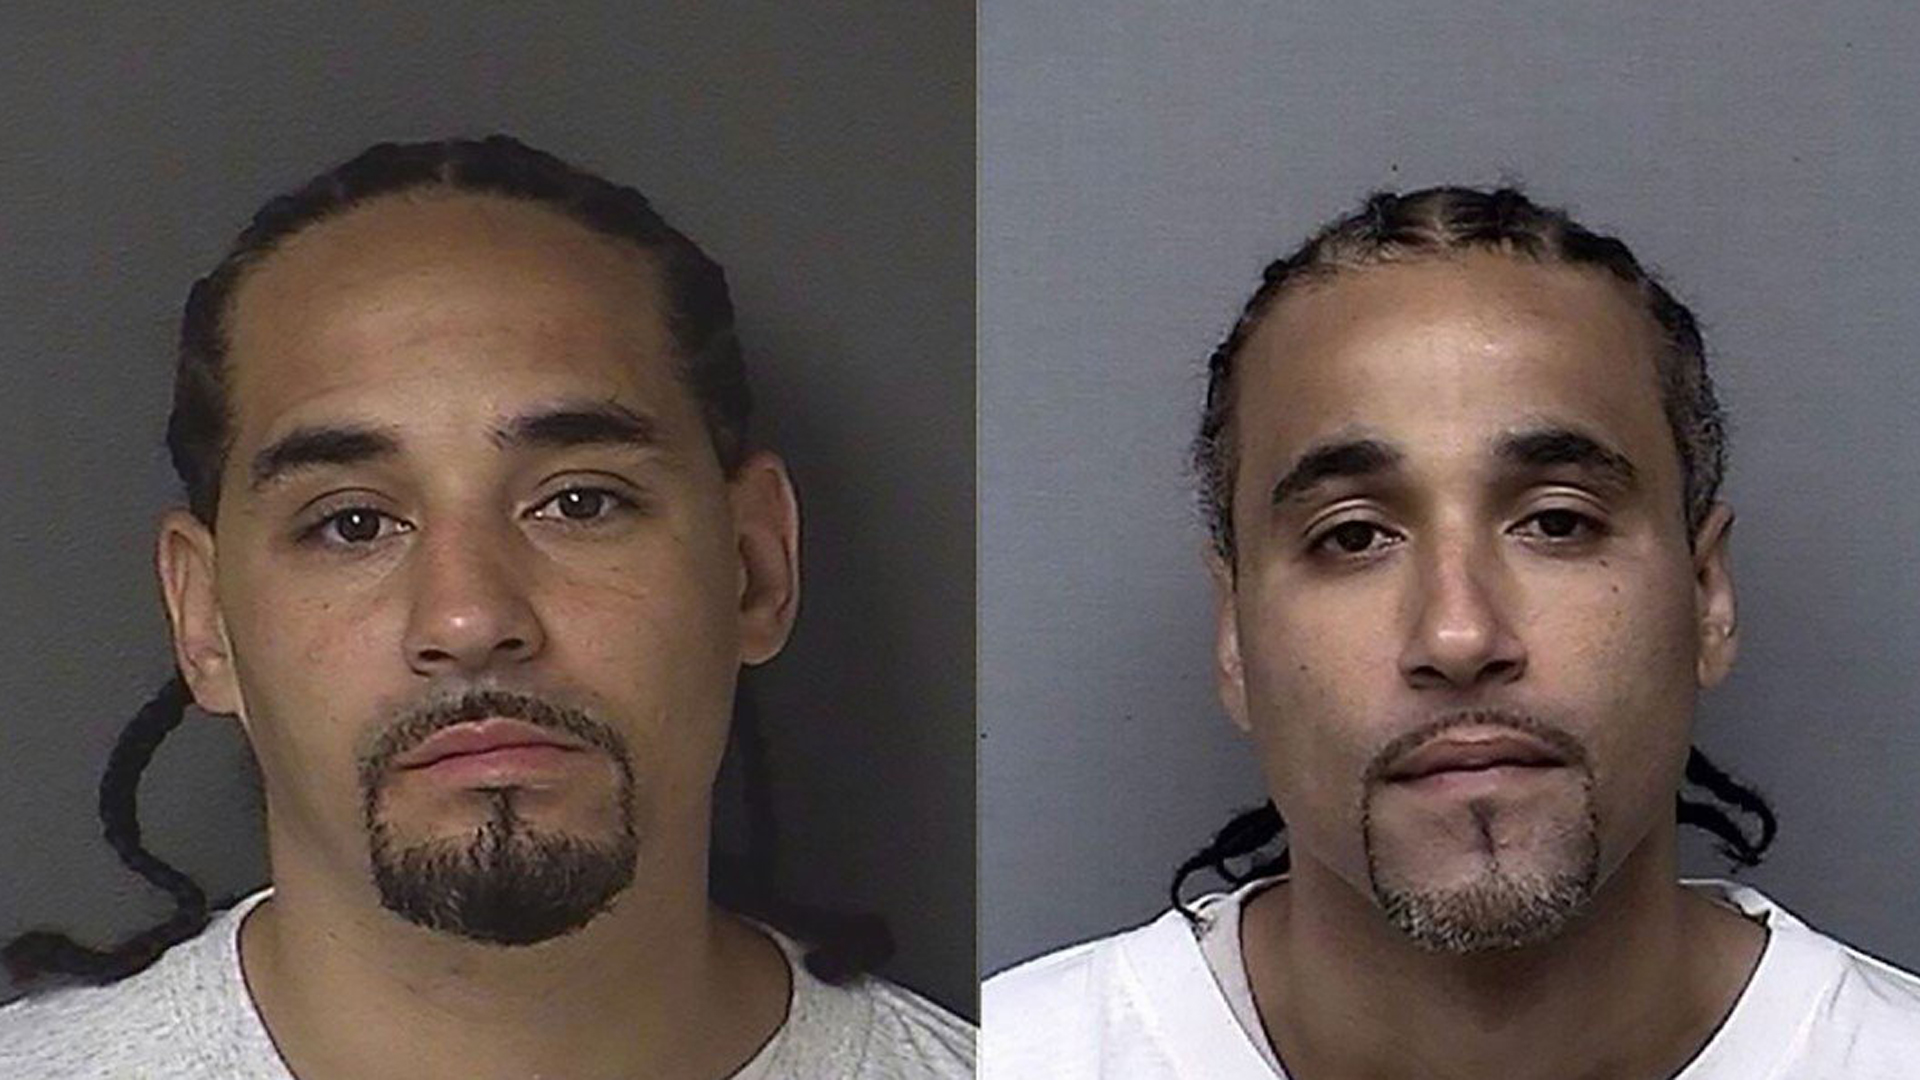 From left: Ricky Amos and Richard Anthony Jones are seen in undated photos from the Kansas Department of Corrections via CNN. Amos committed a robbery which Jones ended up being wrongfully convicted for before spending 17 years in prison for the crime.